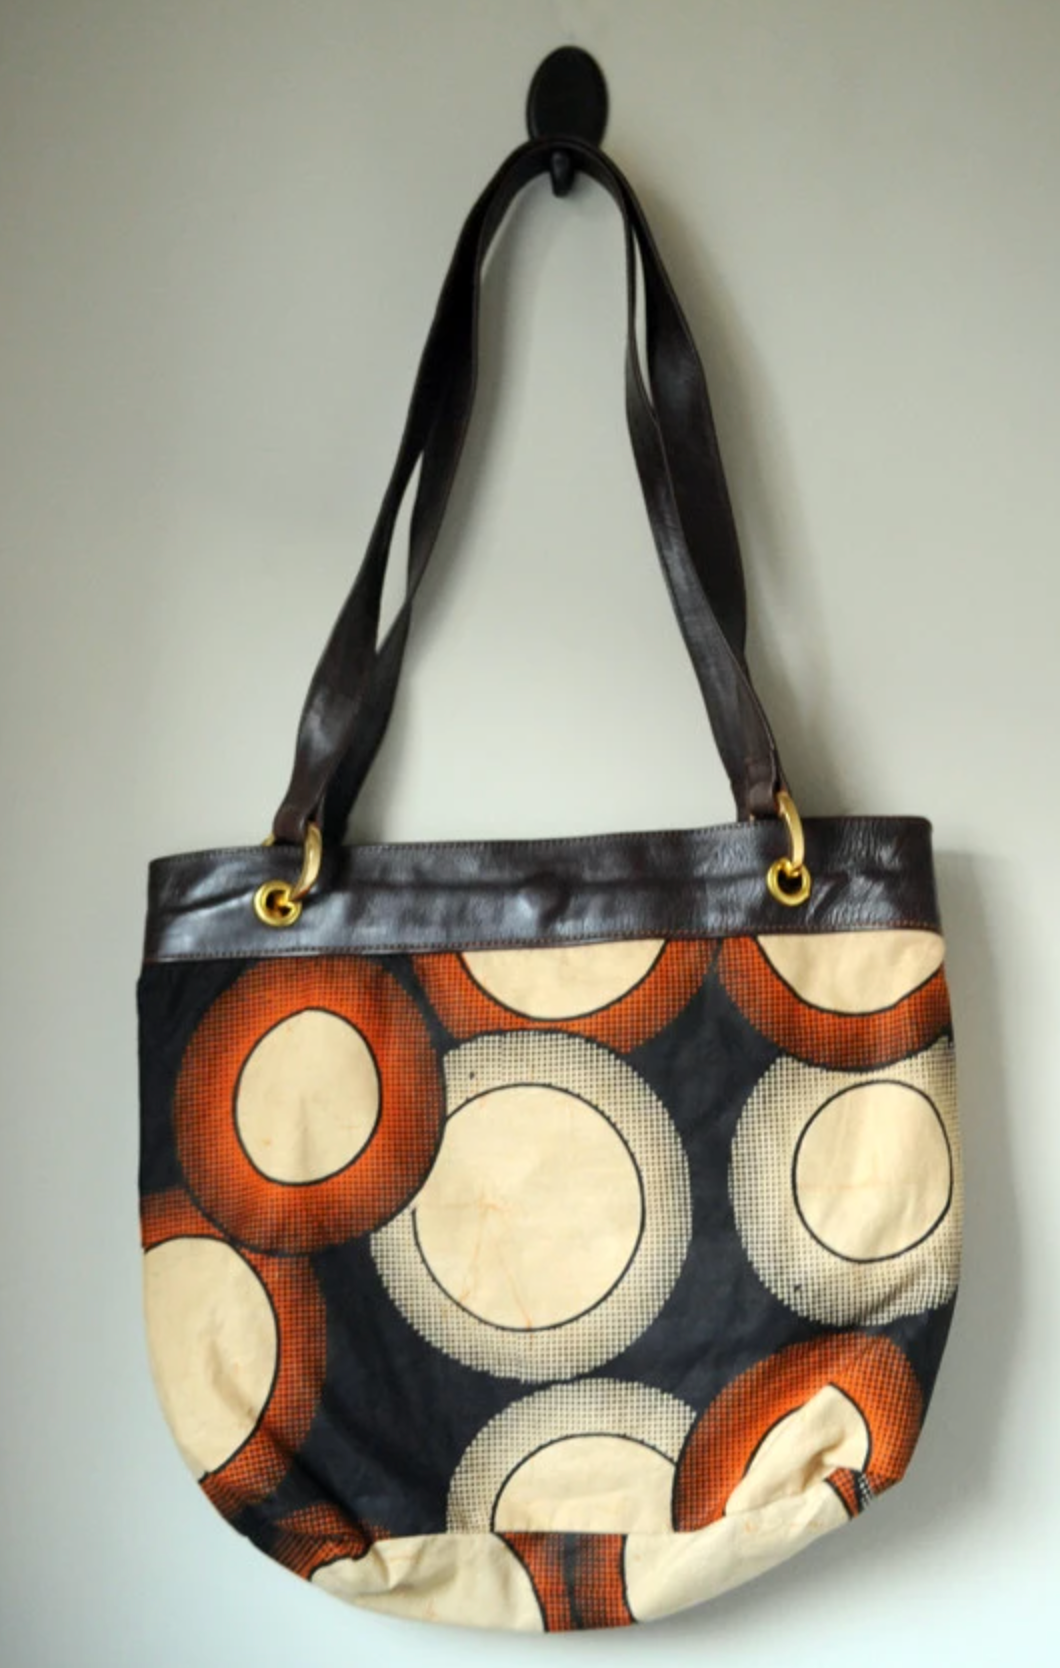 Leather and Fabric Bag - Mseljoy Accessories